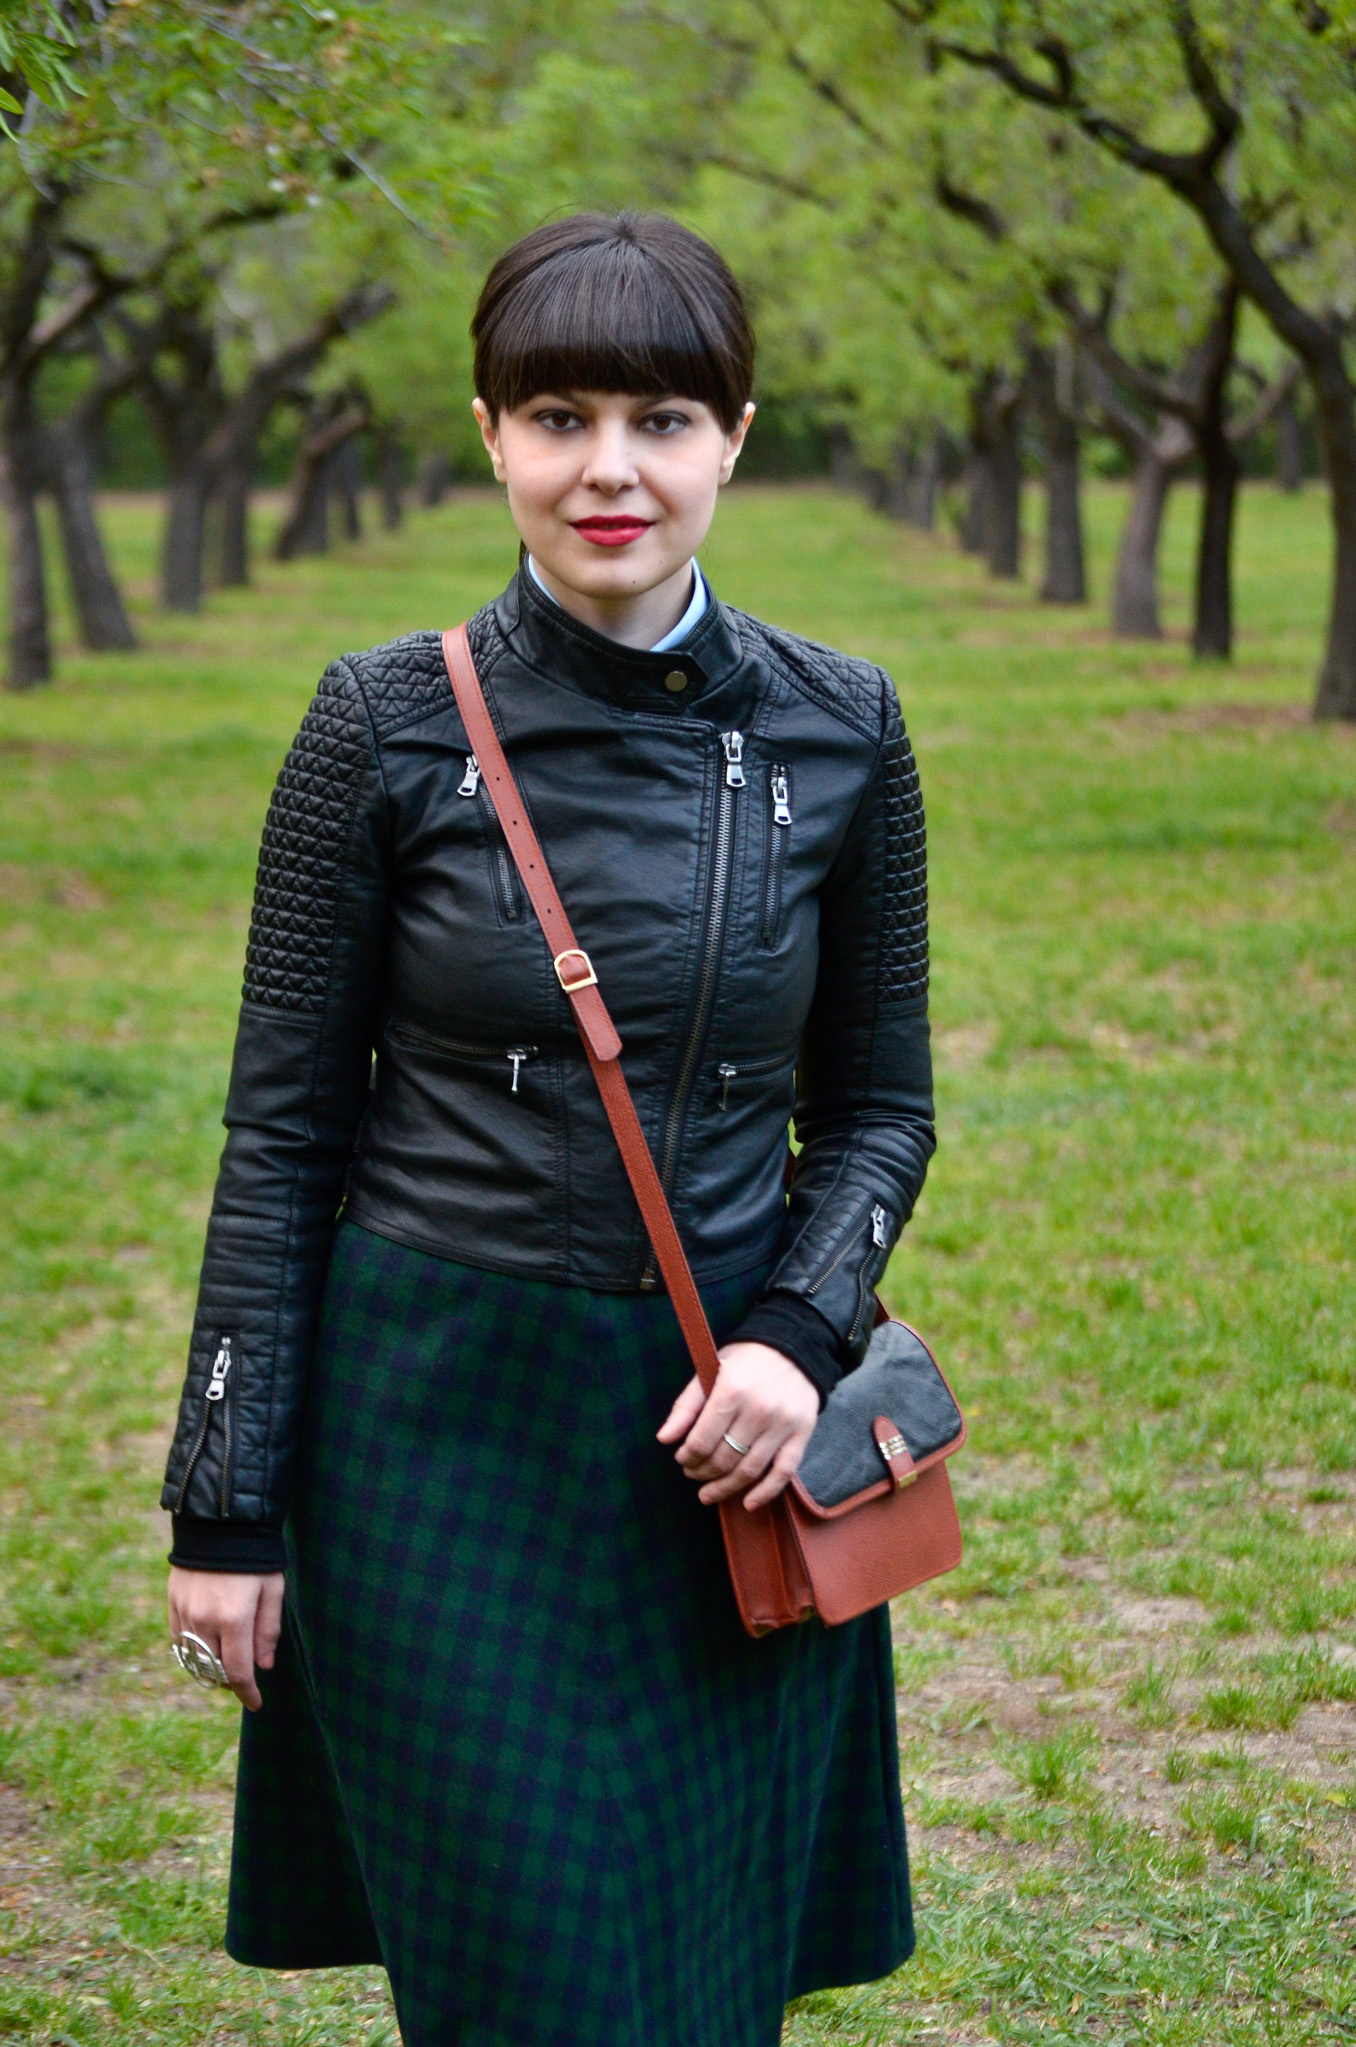 school girl outfit in madrid green tartan midi skirt thrifted brown bag satchel sky blue shirt black bow tie bangs burgundy oxford shoes poema spring green fresh park